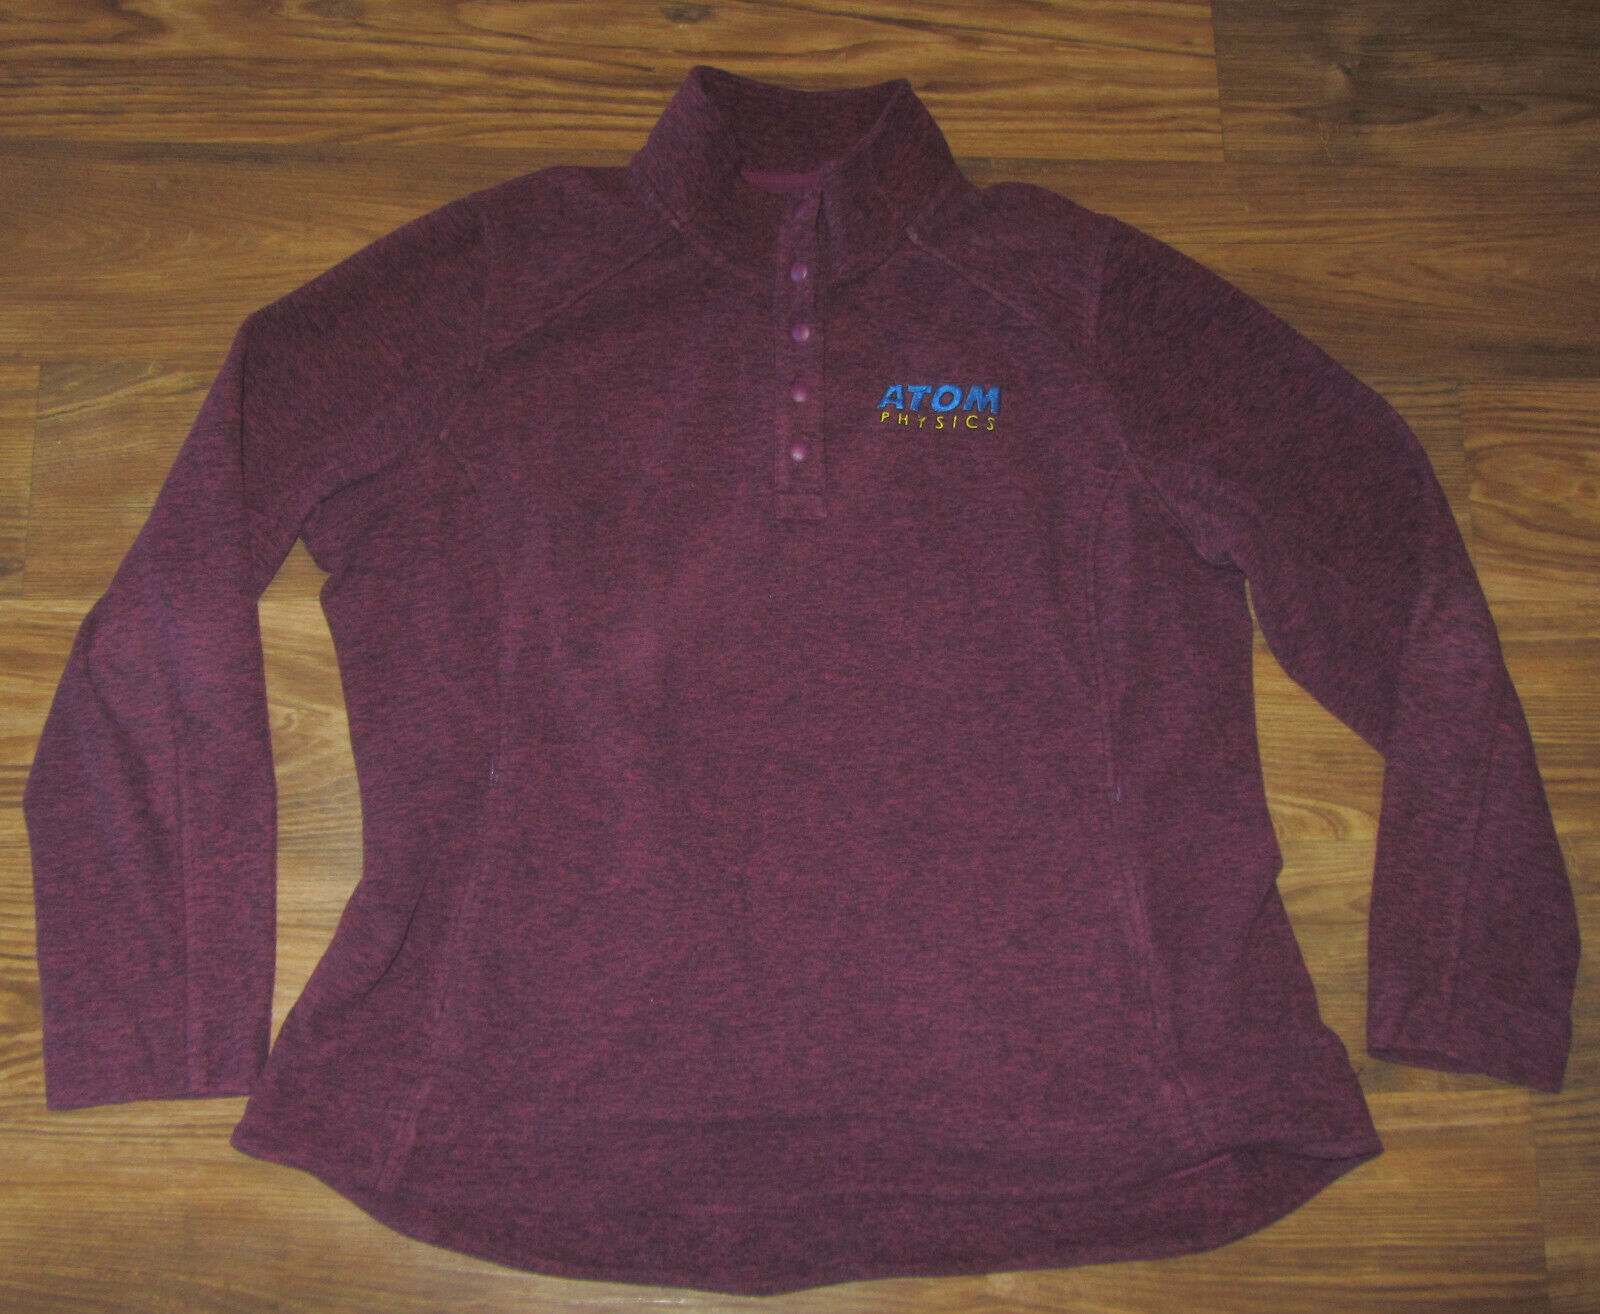 Atomic Physics Mens Long-Sleeve Shirt, Duluth Trading Co, Red, Size 2XL, EUC - $16.00